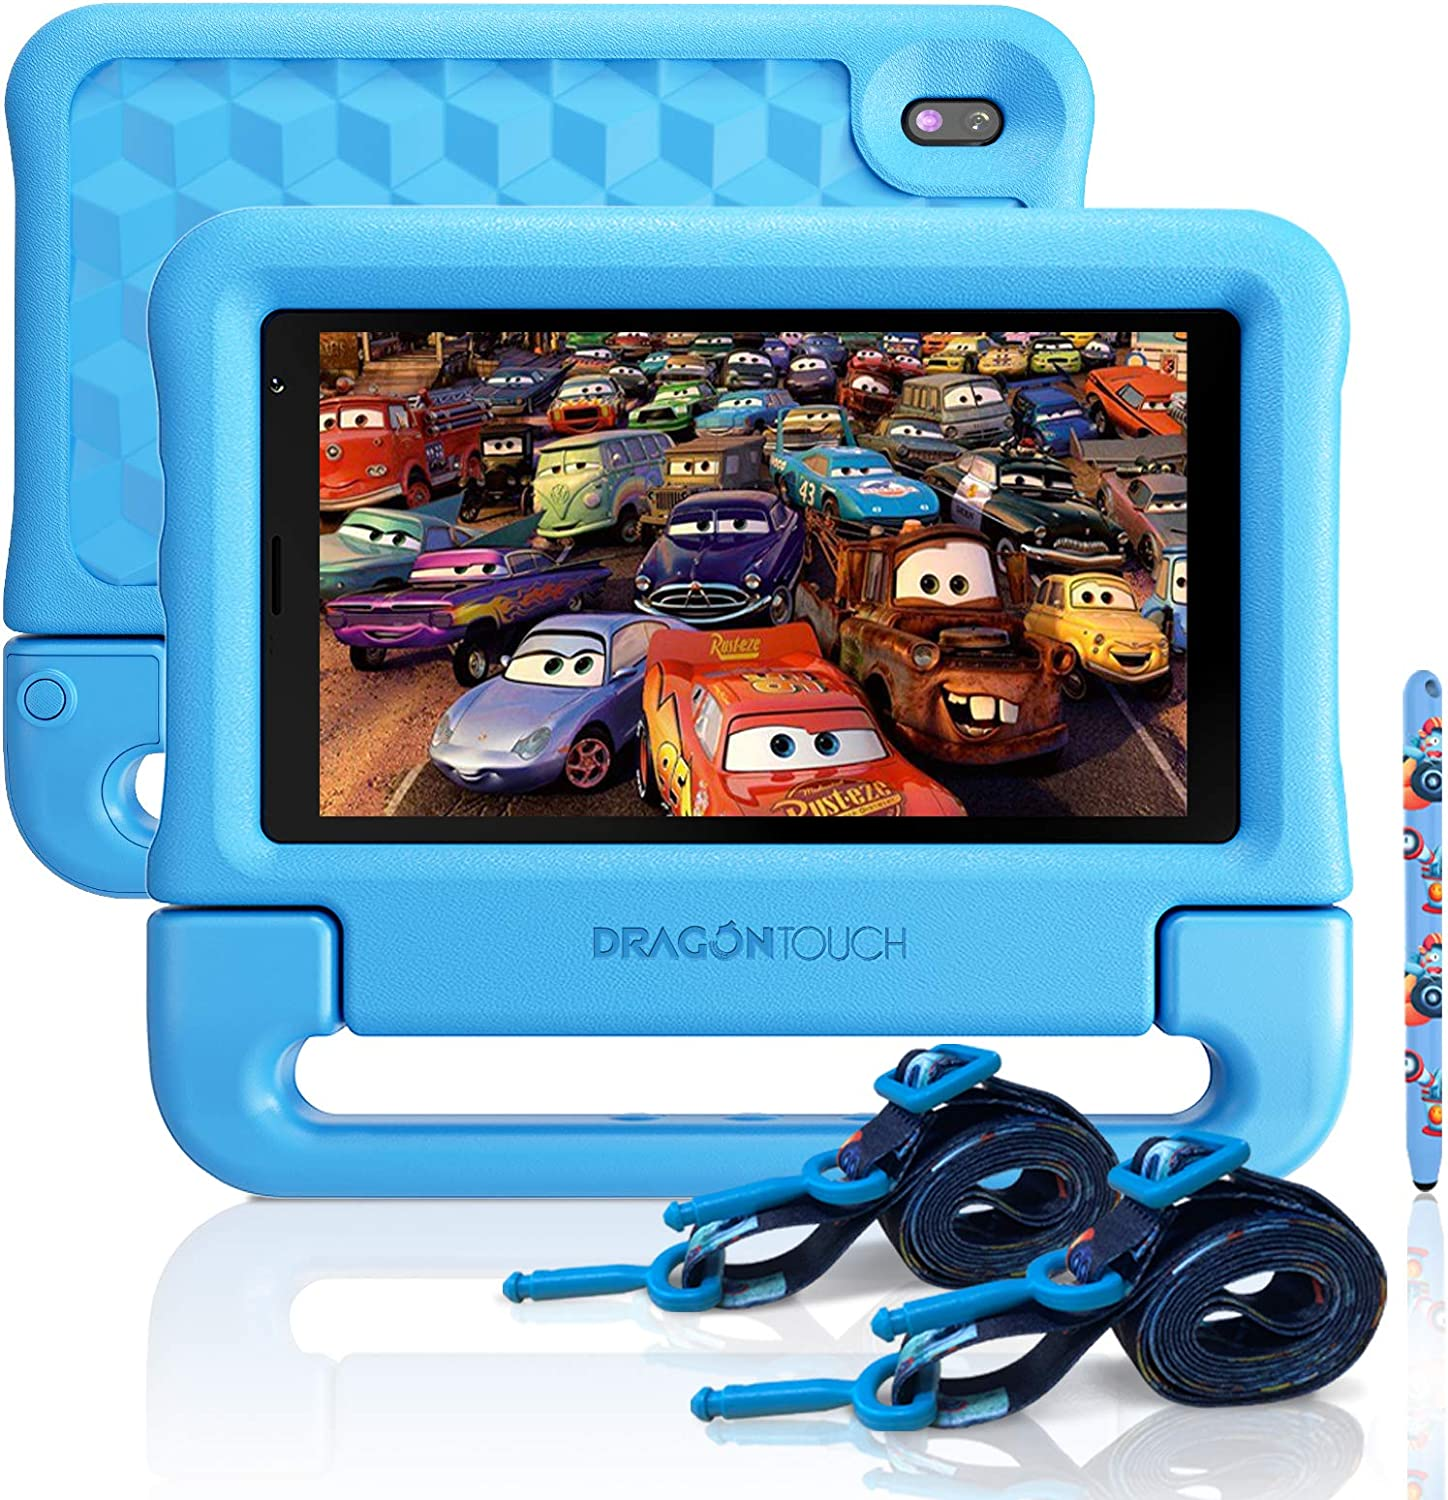 """Dragon Touch KidzPad Y88X 7 Kids Tablet with WiFi, Android 10, 7"""" IPS HD Display, 32GB ROM, KIDOZ Pre-Installed, with Disney Authorized Contents, Kid-Proof Case, Shoulder Strap and Stylus, Blue"""